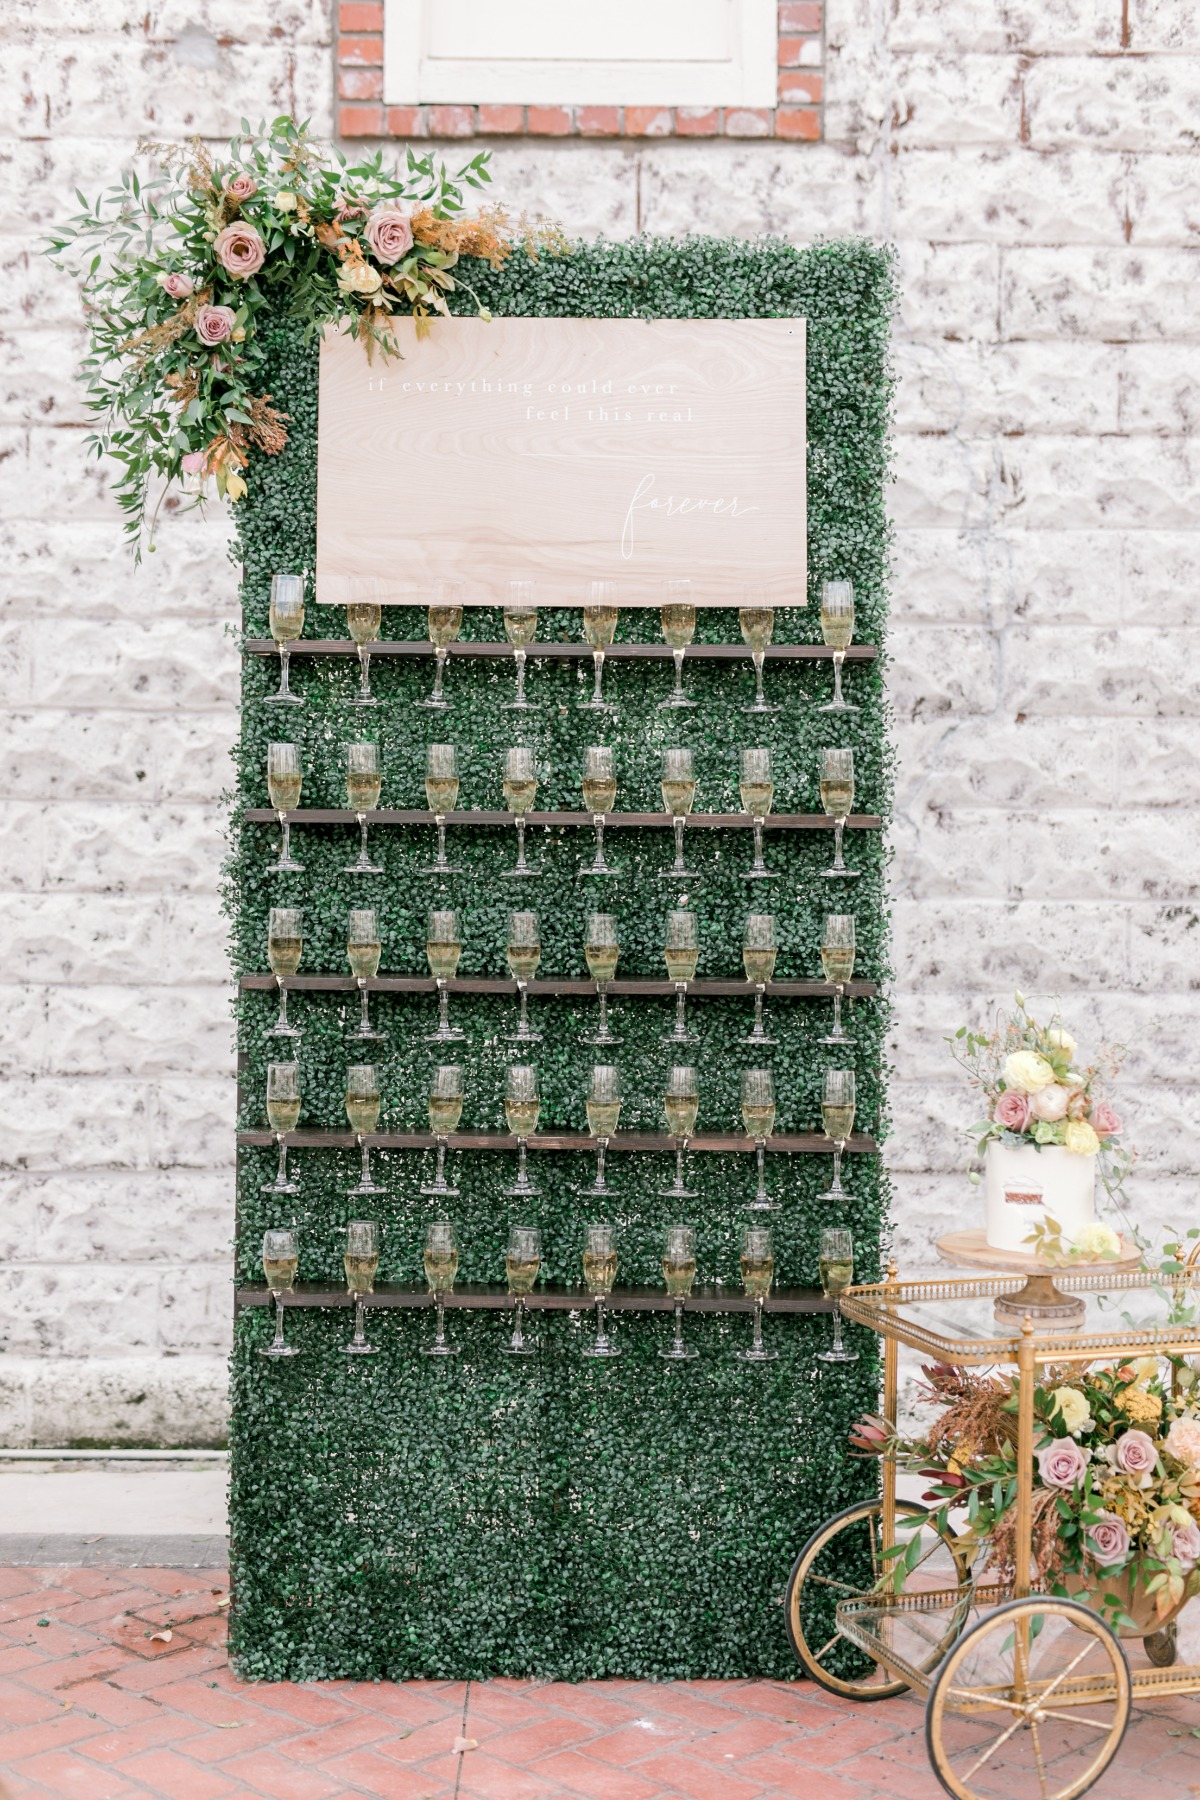 Image by Steph Smith Weddings, Champagne Wall by Paper Supply Co.